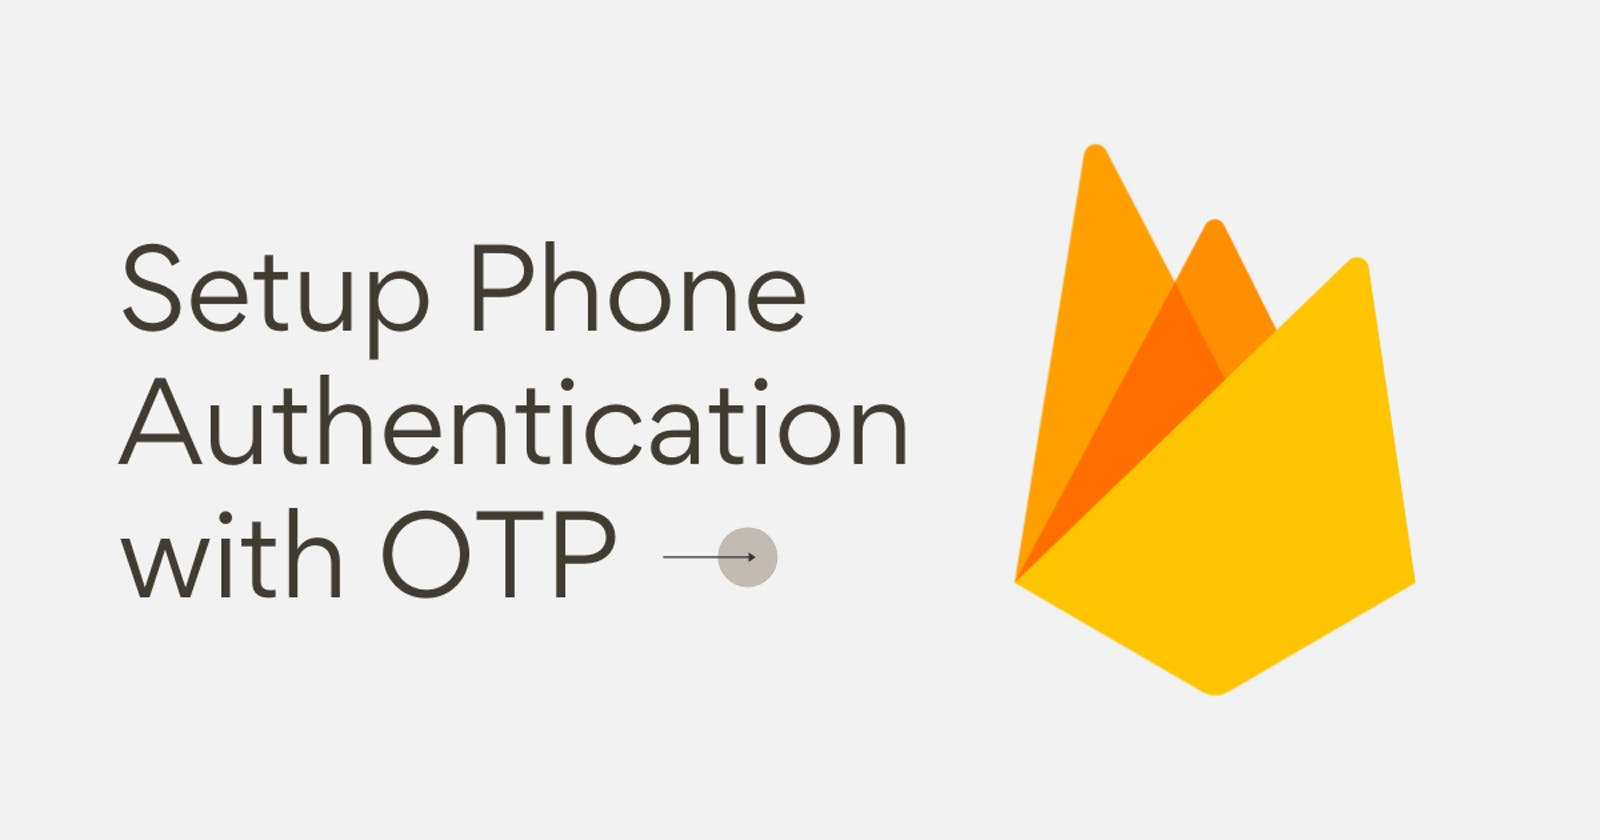 Setup Phone Authentication with OTP in your React App 🚀